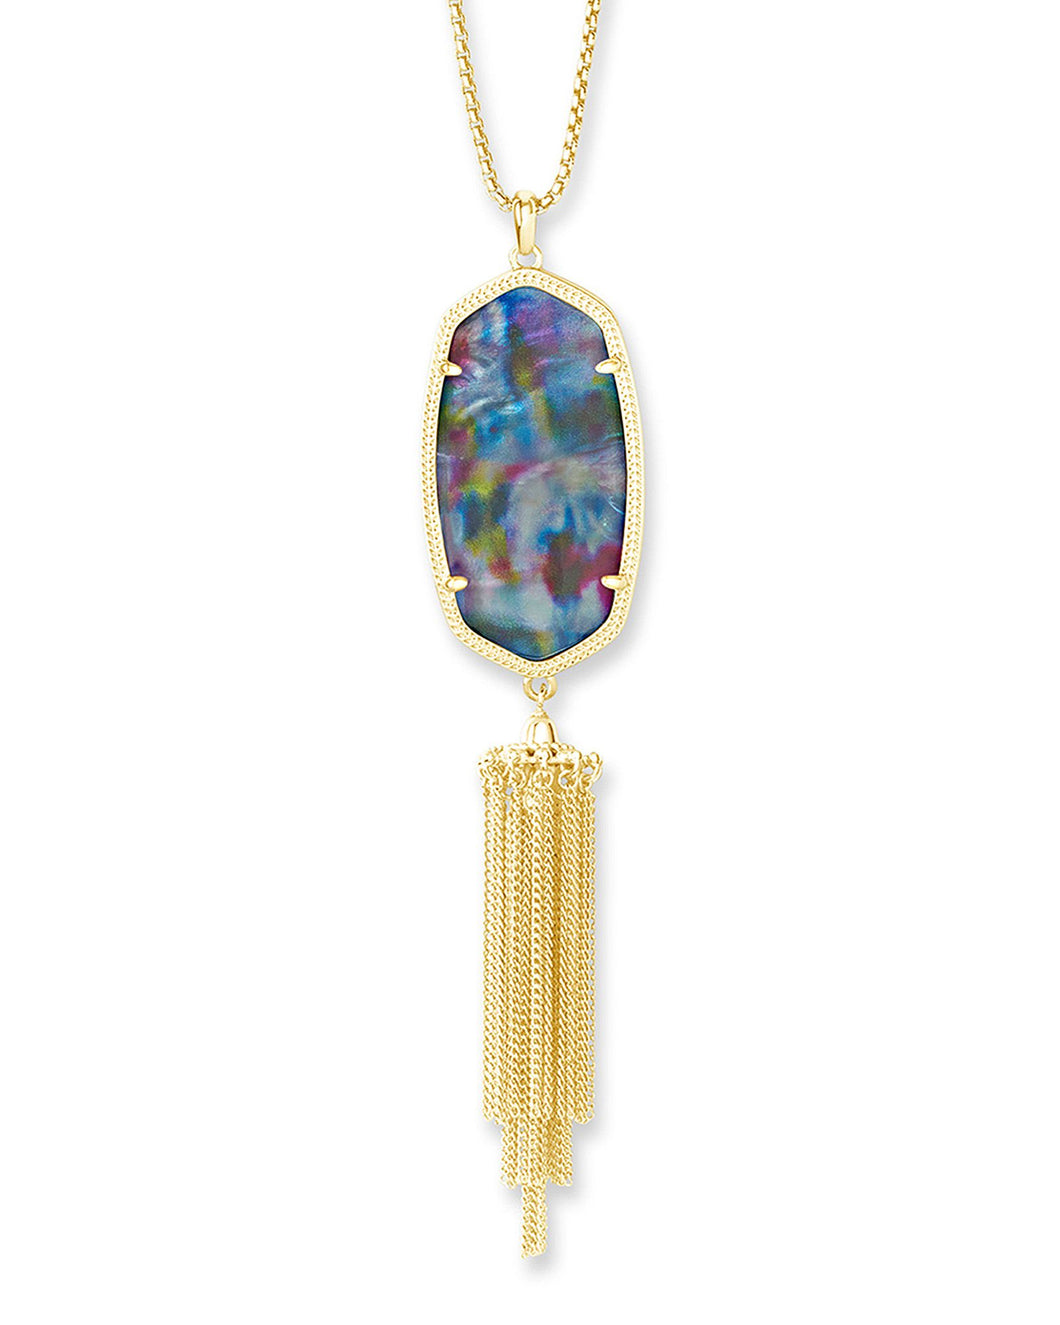 Rayne Gold Long Necklace in Teal Tie Dye Illusion